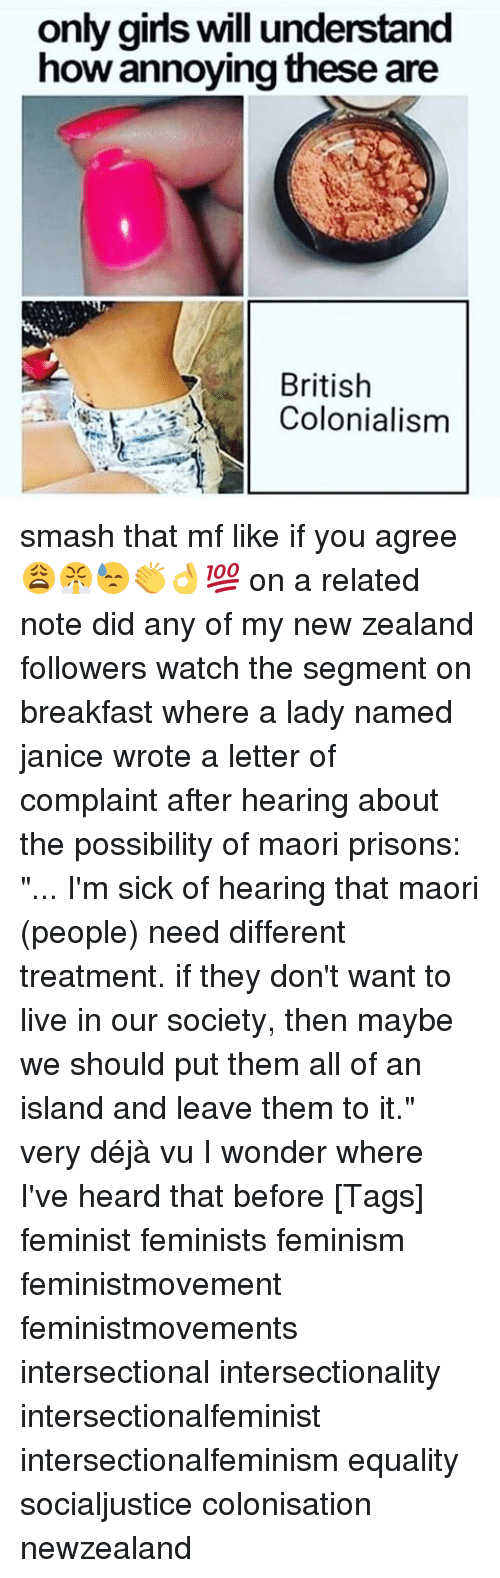 """colonialism: only girls will understand  how annoying these are  British  Colonialism smash that mf like if you agree 😩😤😓👏👌💯 on a related note did any of my new zealand followers watch the segment on breakfast where a lady named janice wrote a letter of complaint after hearing about the possibility of maori prisons: """"... I'm sick of hearing that maori (people) need different treatment. if they don't want to live in our society, then maybe we should put them all of an island and leave them to it."""" very déjà vu I wonder where I've heard that before [Tags] feminist feminists feminism feministmovement feministmovements intersectional intersectionality intersectionalfeminist intersectionalfeminism equality socialjustice colonisation newzealand"""